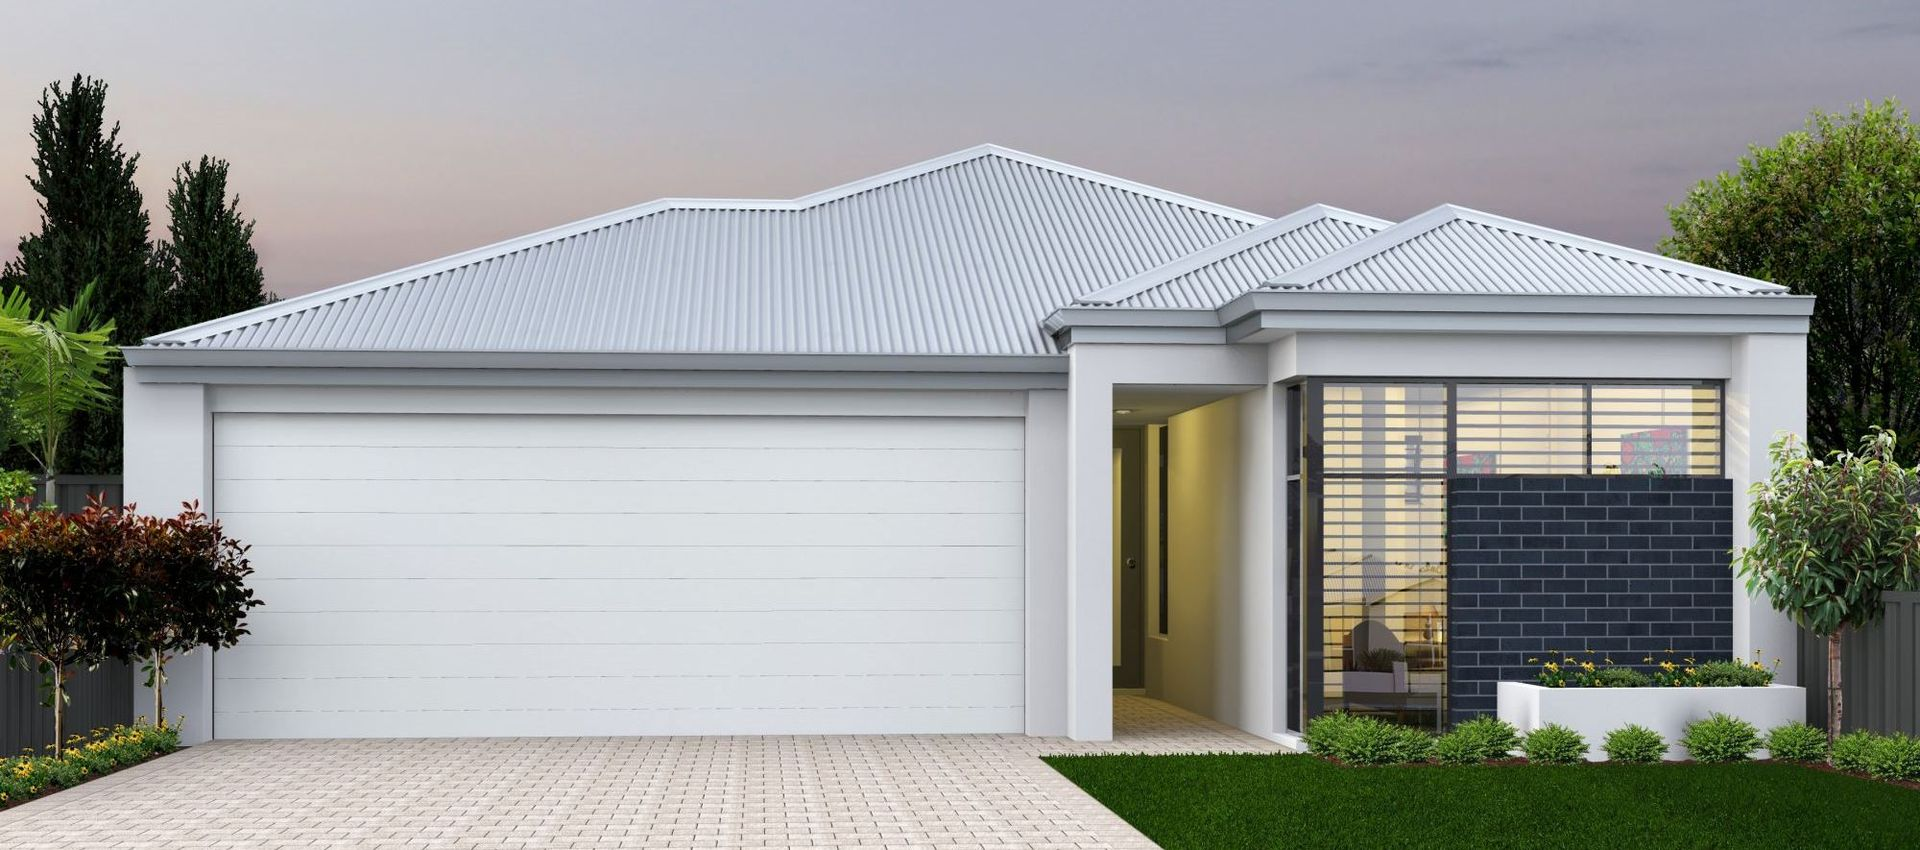 Lot 359 Crombie Way, Baldivis WA 6171, Image 0